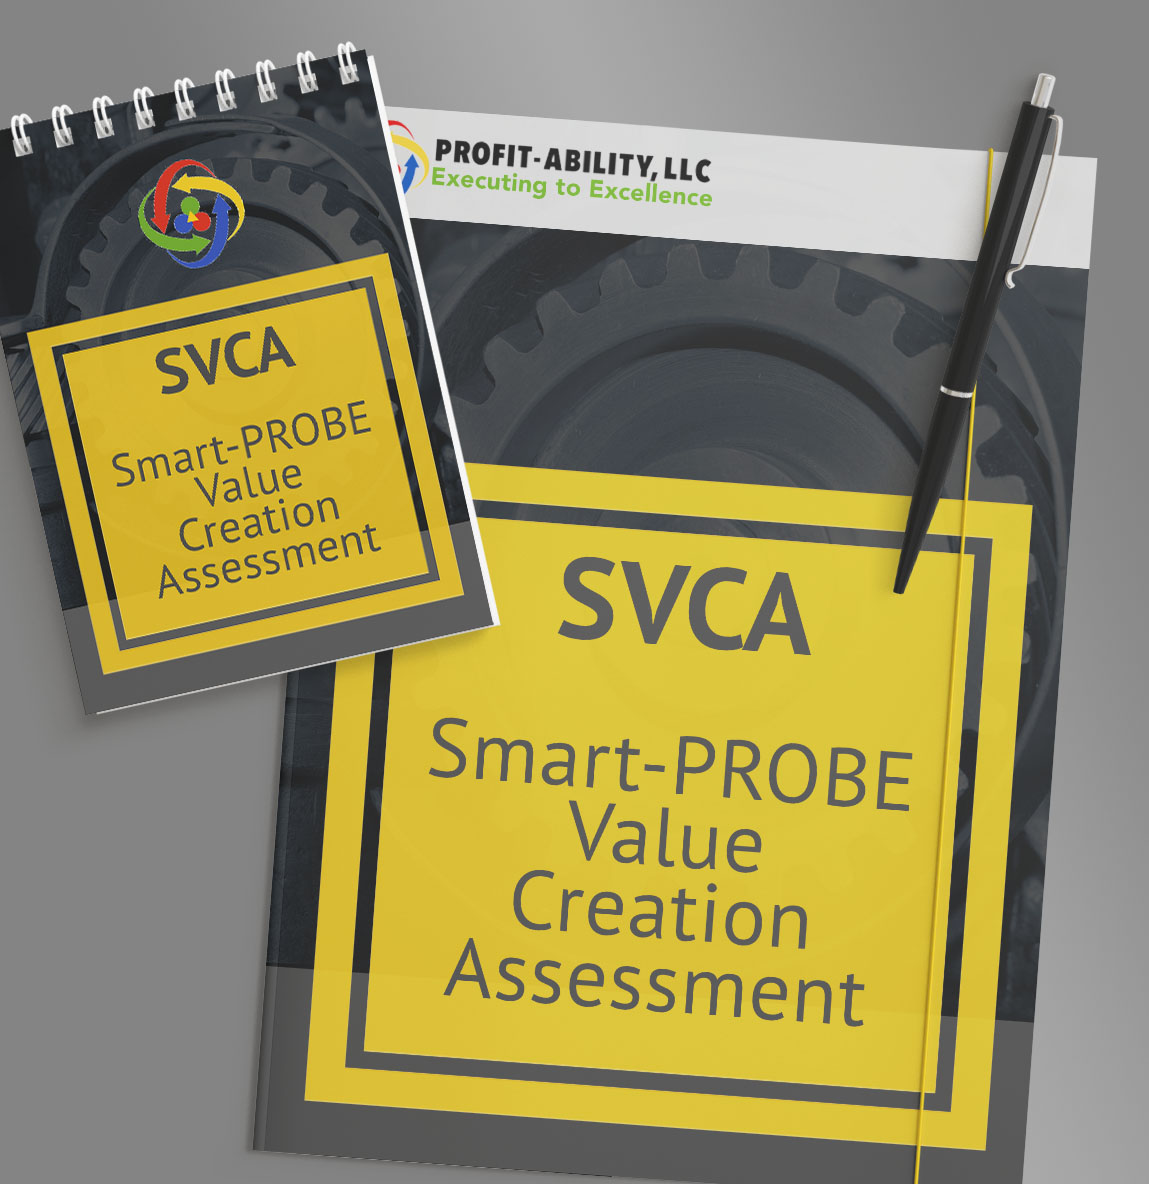 Smart-PROBE Value Creation Assessment